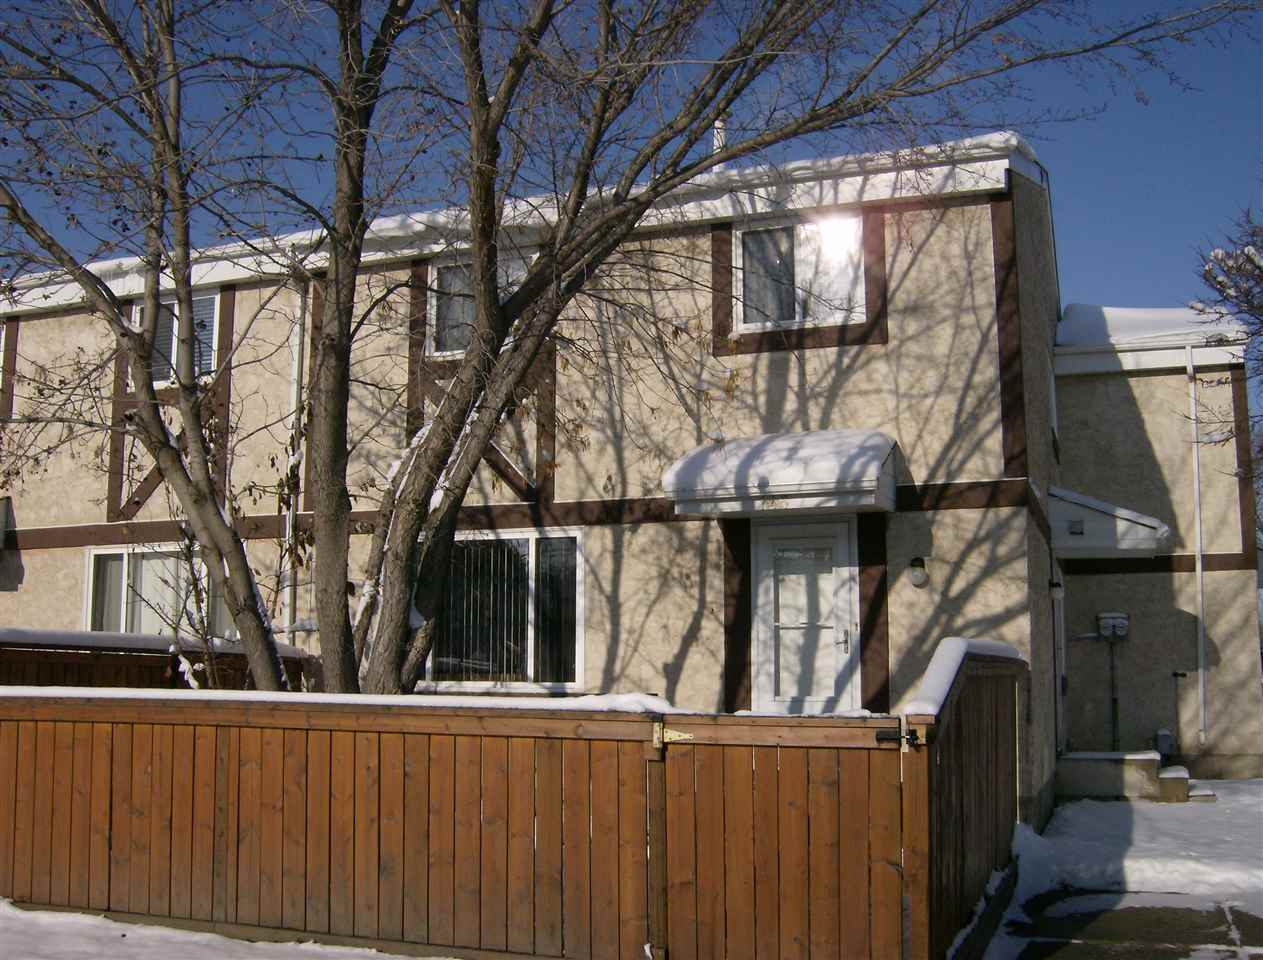 Bright and airy 2 storey, 3 bedroom townhouse close to West Edmonton Mall! High lights of this well maintained home include a fabulous remodeled kitchen, no carpet so allergy friendly, two entrance doors, and a close parking stall with plug in. Large living room with picture window, tons of cupboards in the kitchen with newer counter tops, it's own kitchen window, separate dinette, and a 2 pce bath .Fridge, Stove, Dishwasher and the Dryer were new in 2016.  Upstairs you will find a generous master bedroom, 2 kids bedrooms and the main bath with newer tub and vanity. Basement ready for your ideas. No pet, no smoking home. Low condo fees of $295.00 per month in this well run complex.